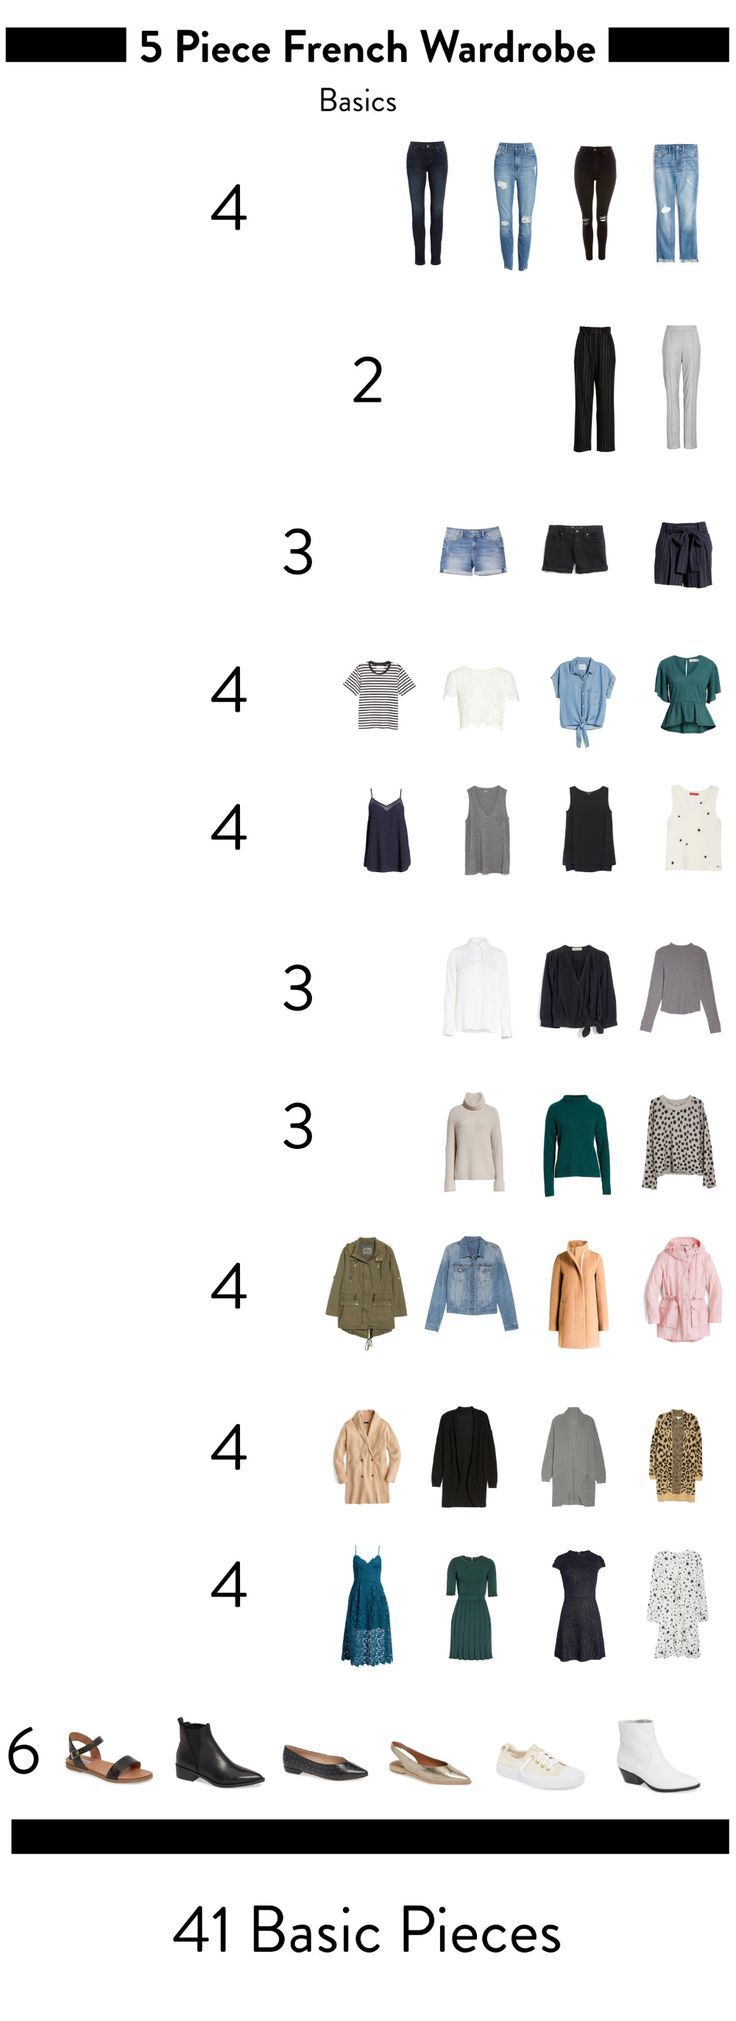 5 Piece French Wardrobe: Get Your French On | Capsule outfits, French capsule wardrobe, French wardr